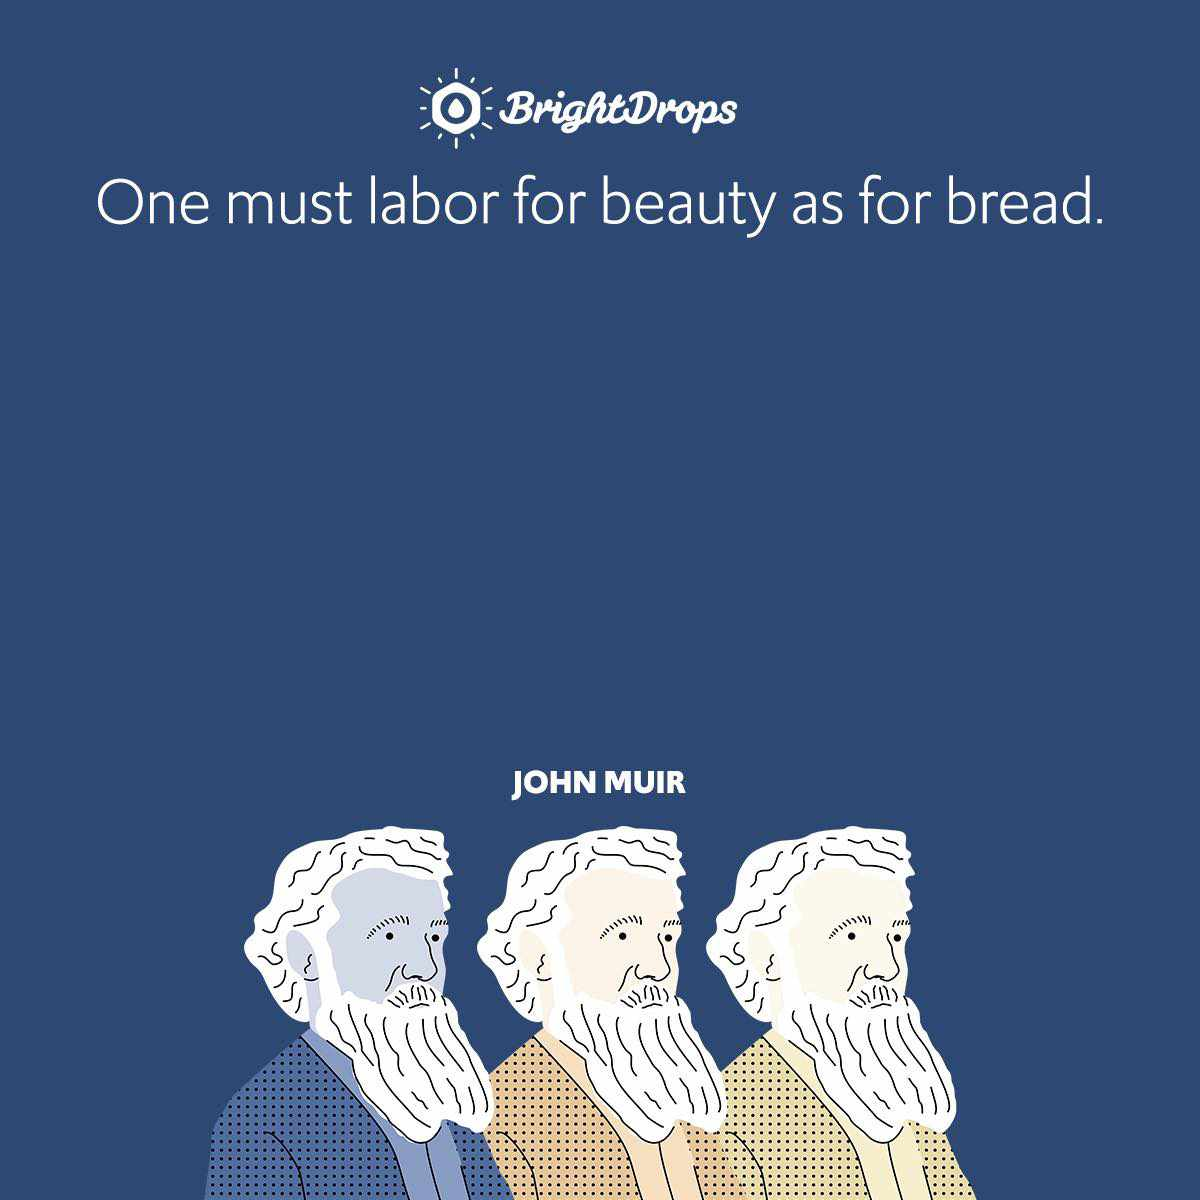 One must labor for beauty as for bread.